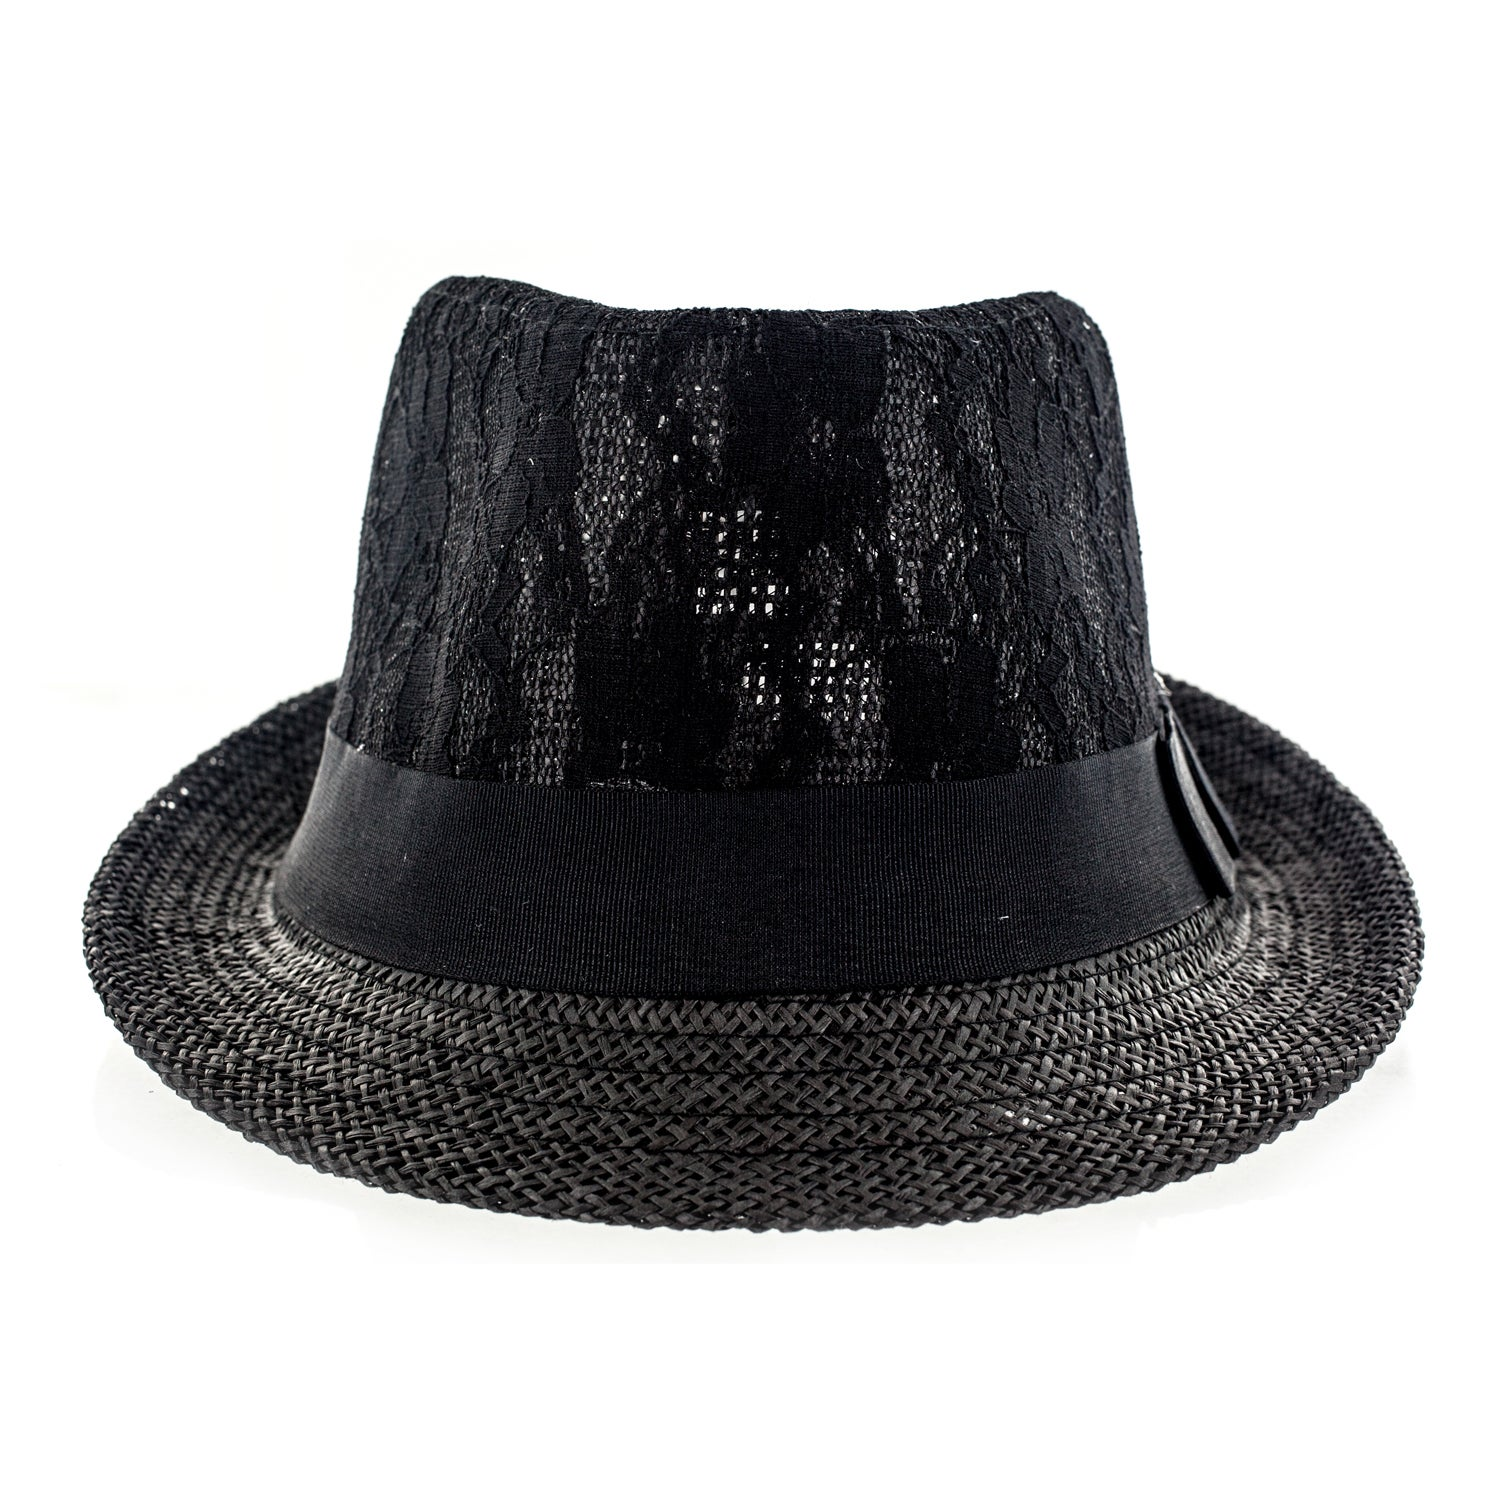 Details about Faddism Fabric Fedora Hat 6f13a70cace